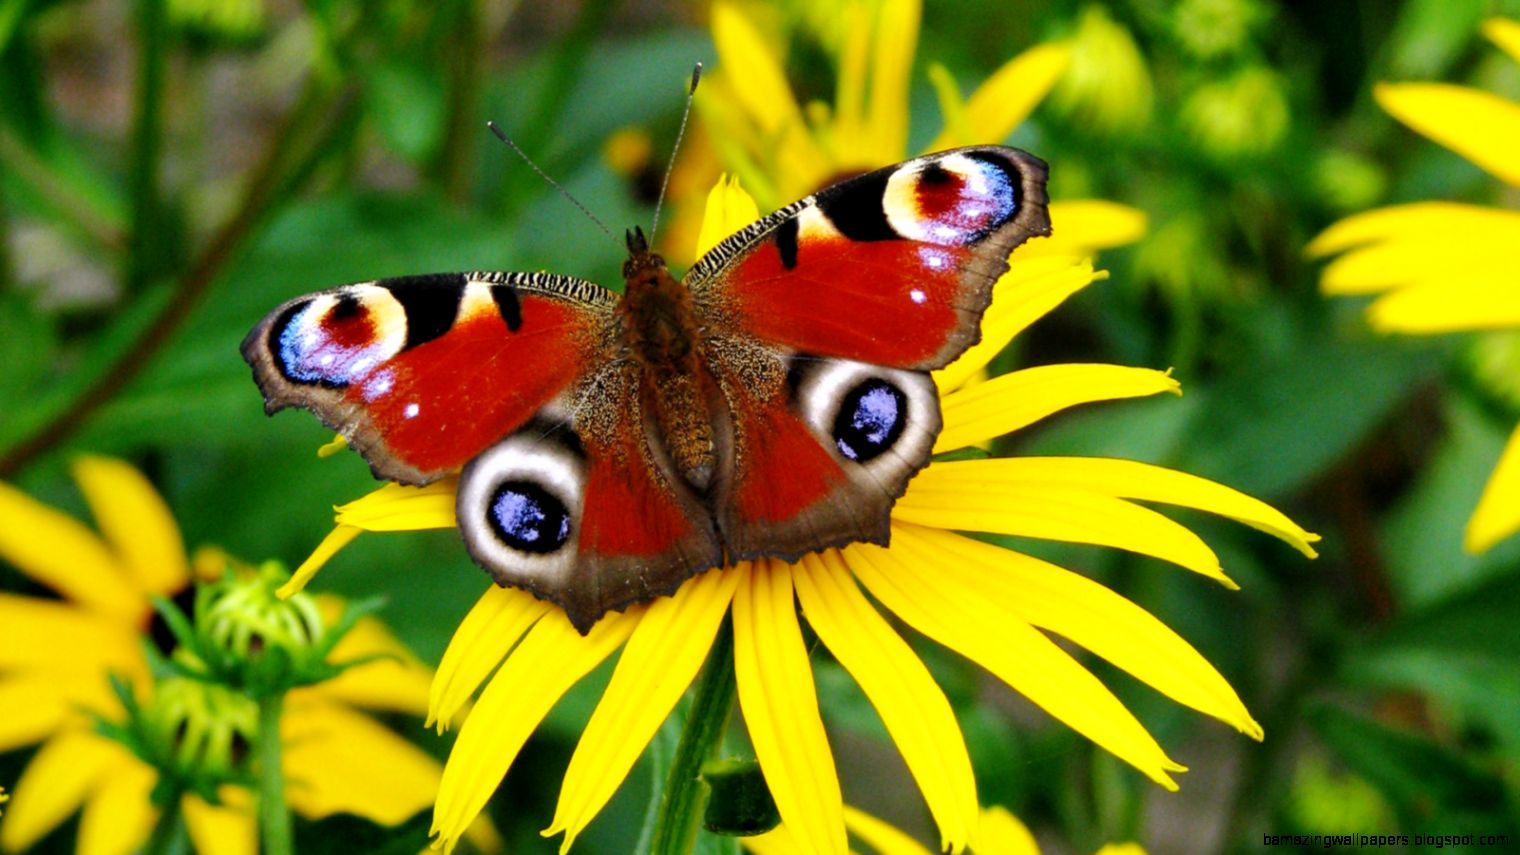 Butterfly HD Wallpapers  Butterfly Desktop Images  Cool Wallpapers